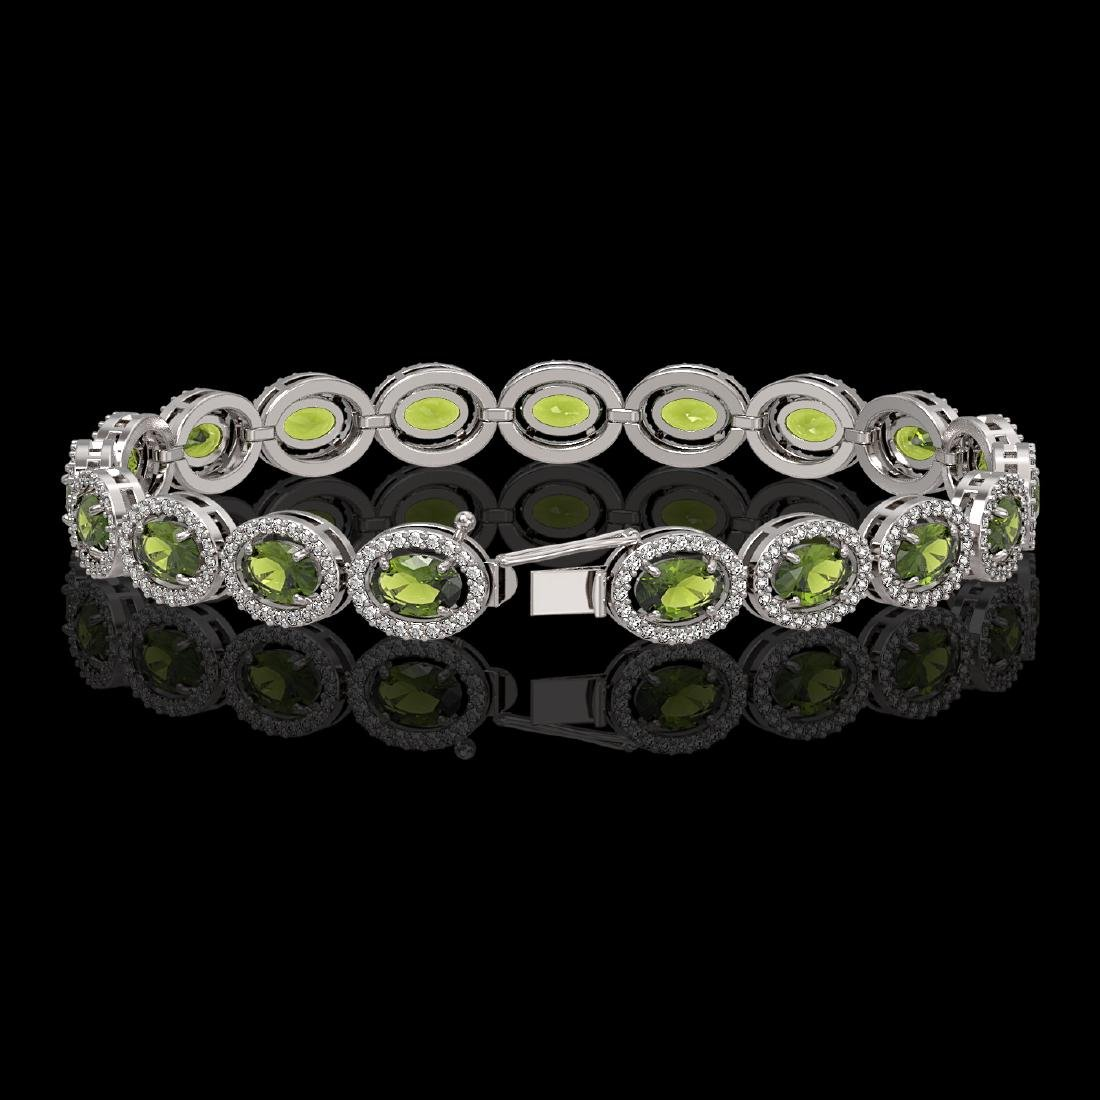 13.87 CTW Tourmaline & Diamond Halo Bracelet 10K White - 2